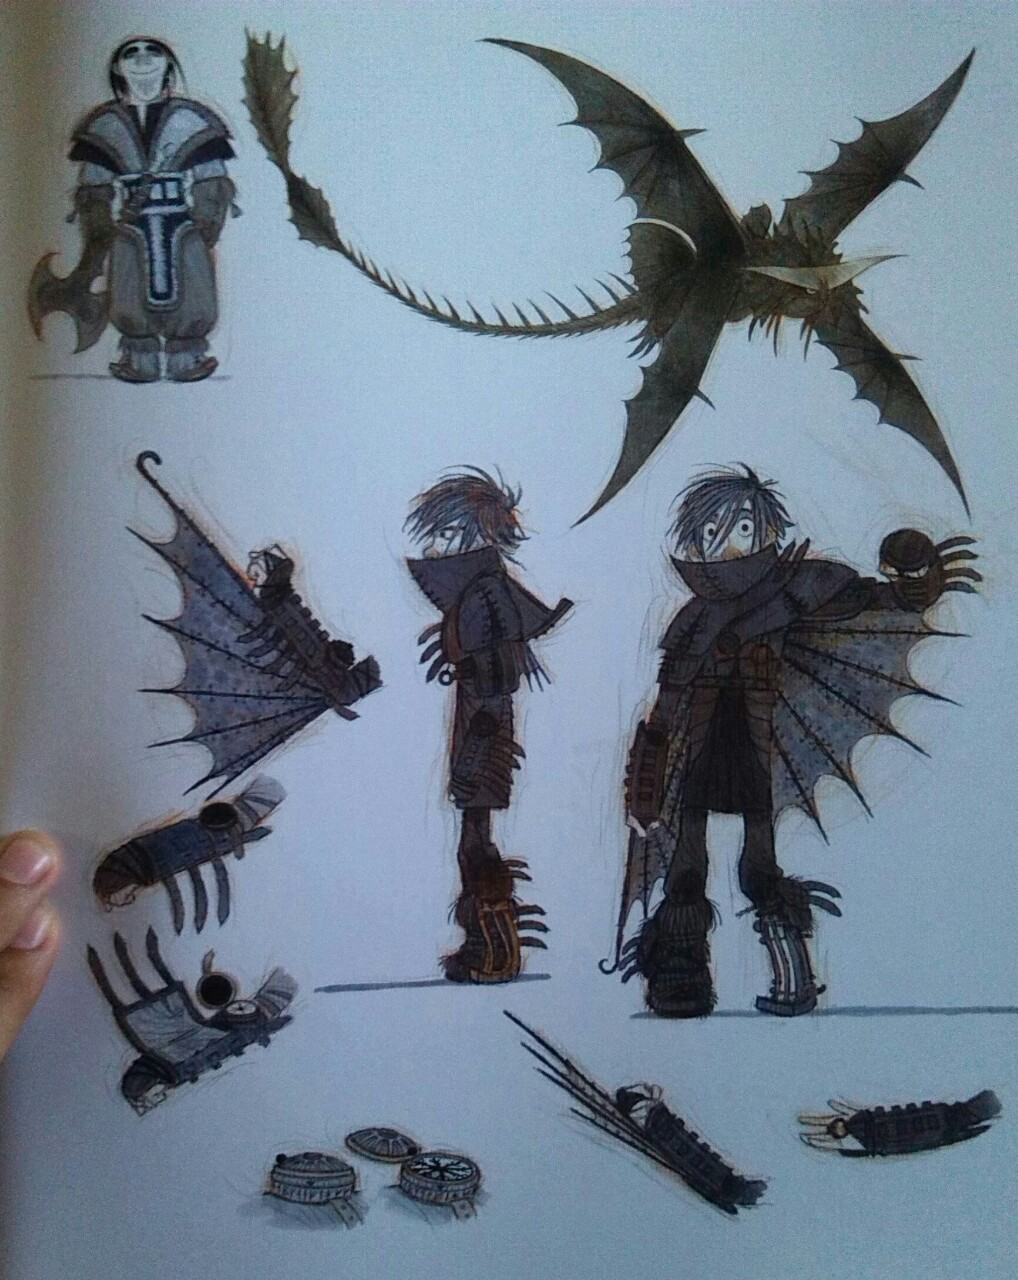 Dragon trainer immagini how to train your dragon 2 concept art hd dragon trainer images how to train your dragon 2 concept art hd wallpaper and background photos ccuart Choice Image